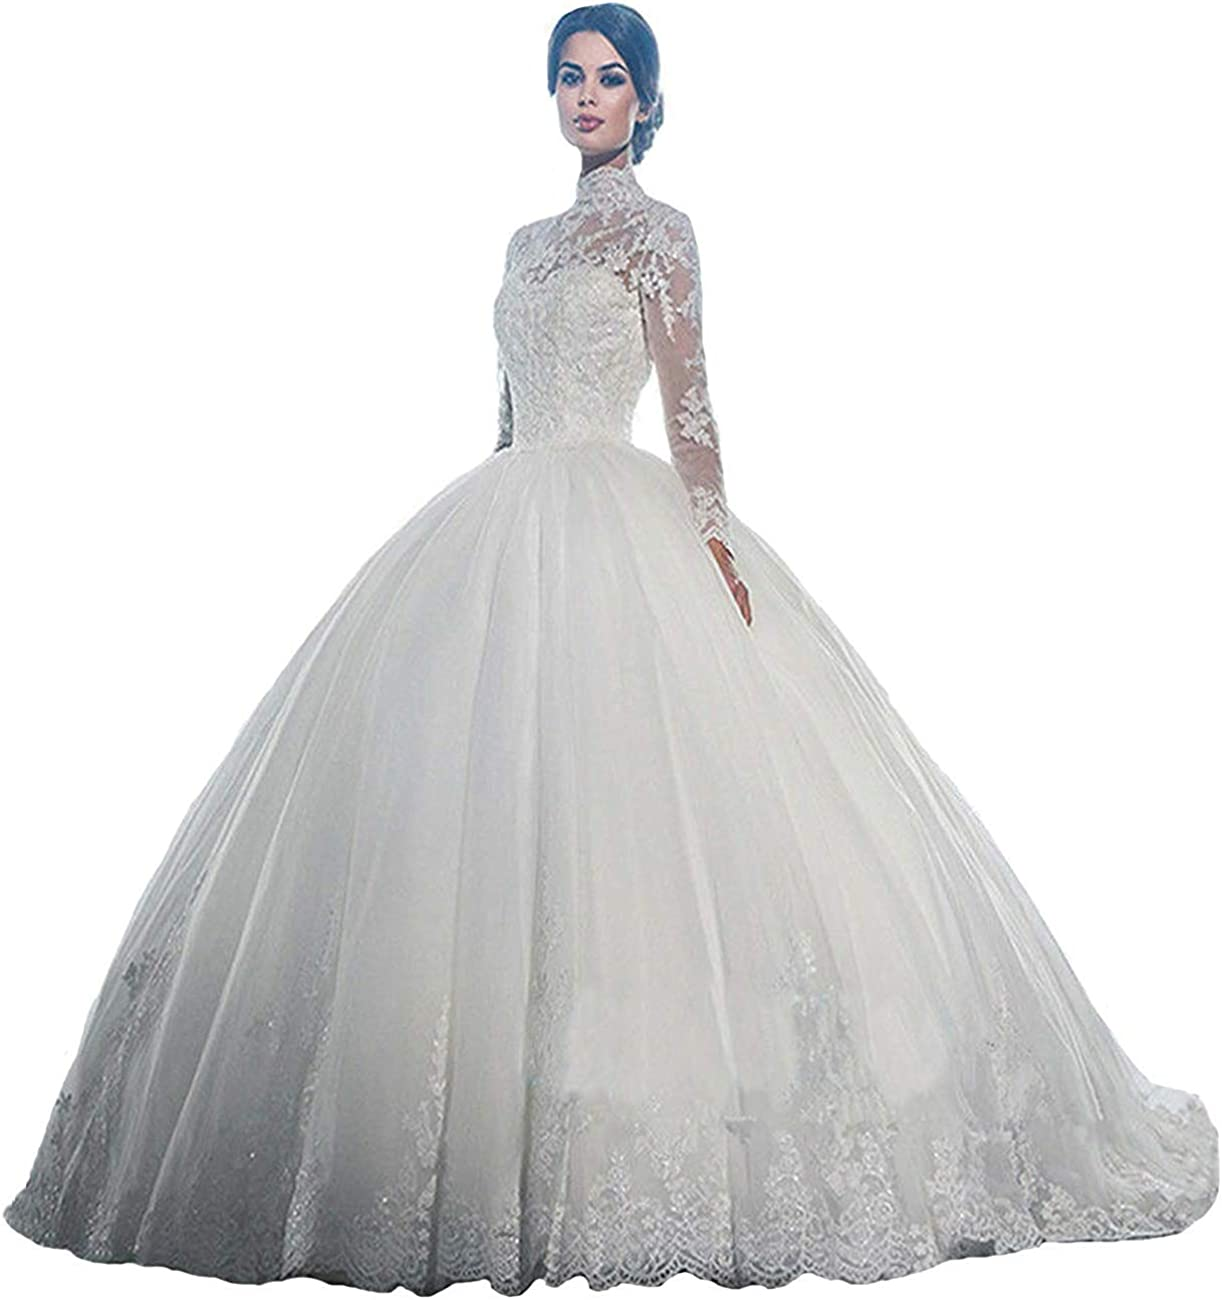 Iluckin Women's Princess High Neck Long Sleeves Lace Wedding Dress for Bride with Lace 2020 Bridal Ball Gowns